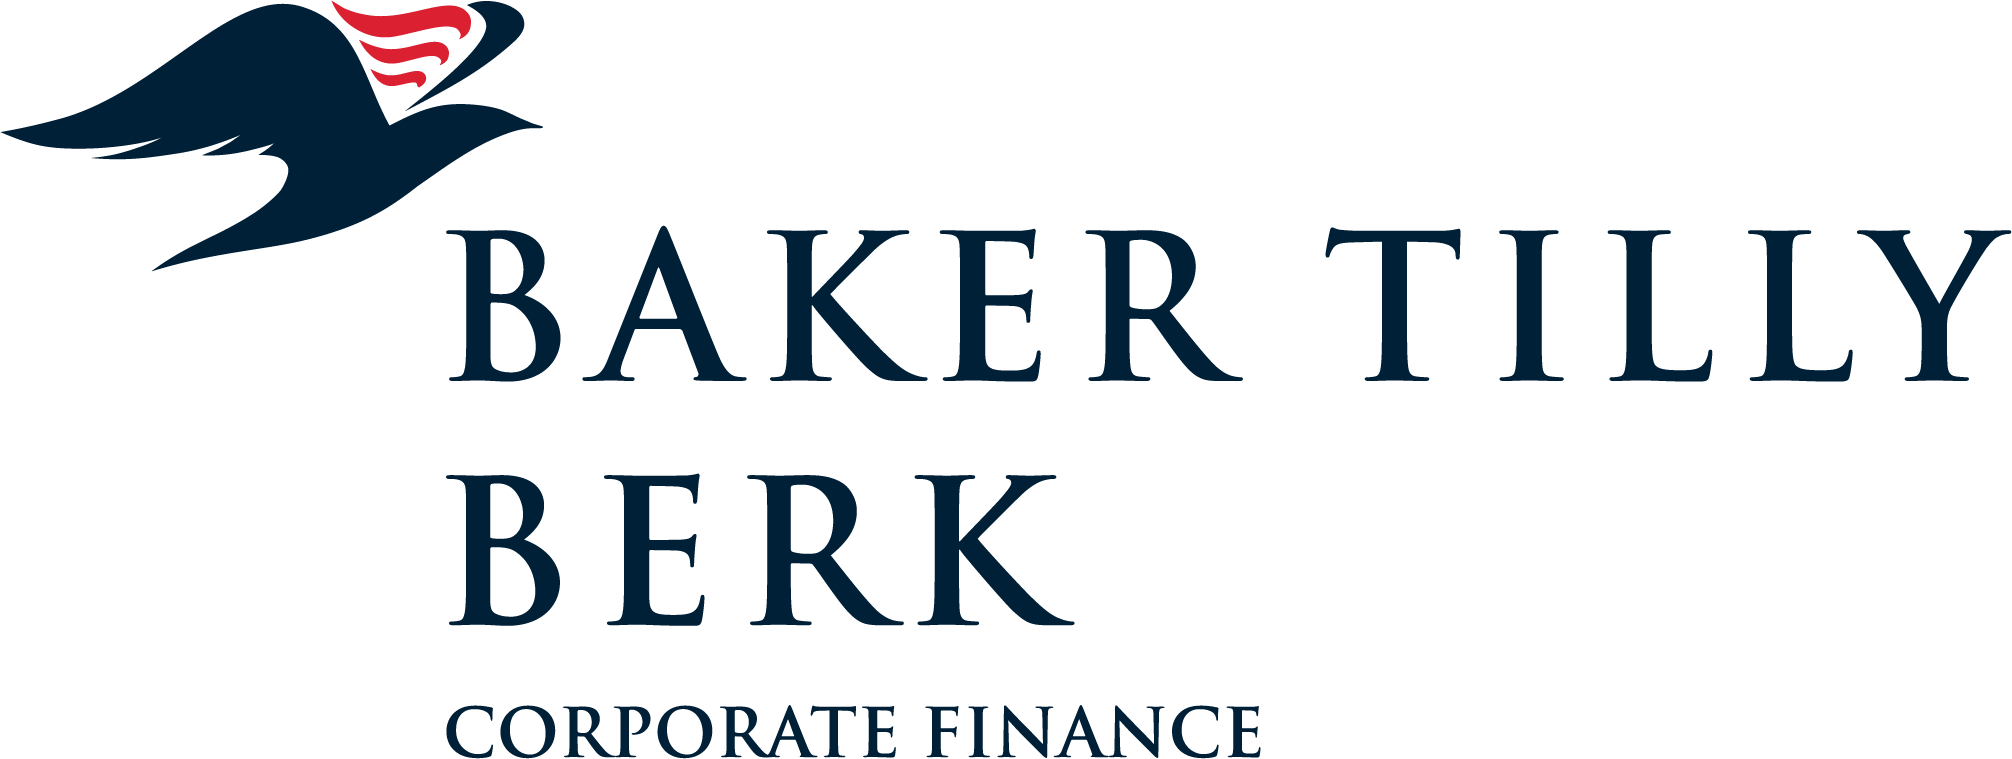 Baker Tilly Berk Corporate Finance logo